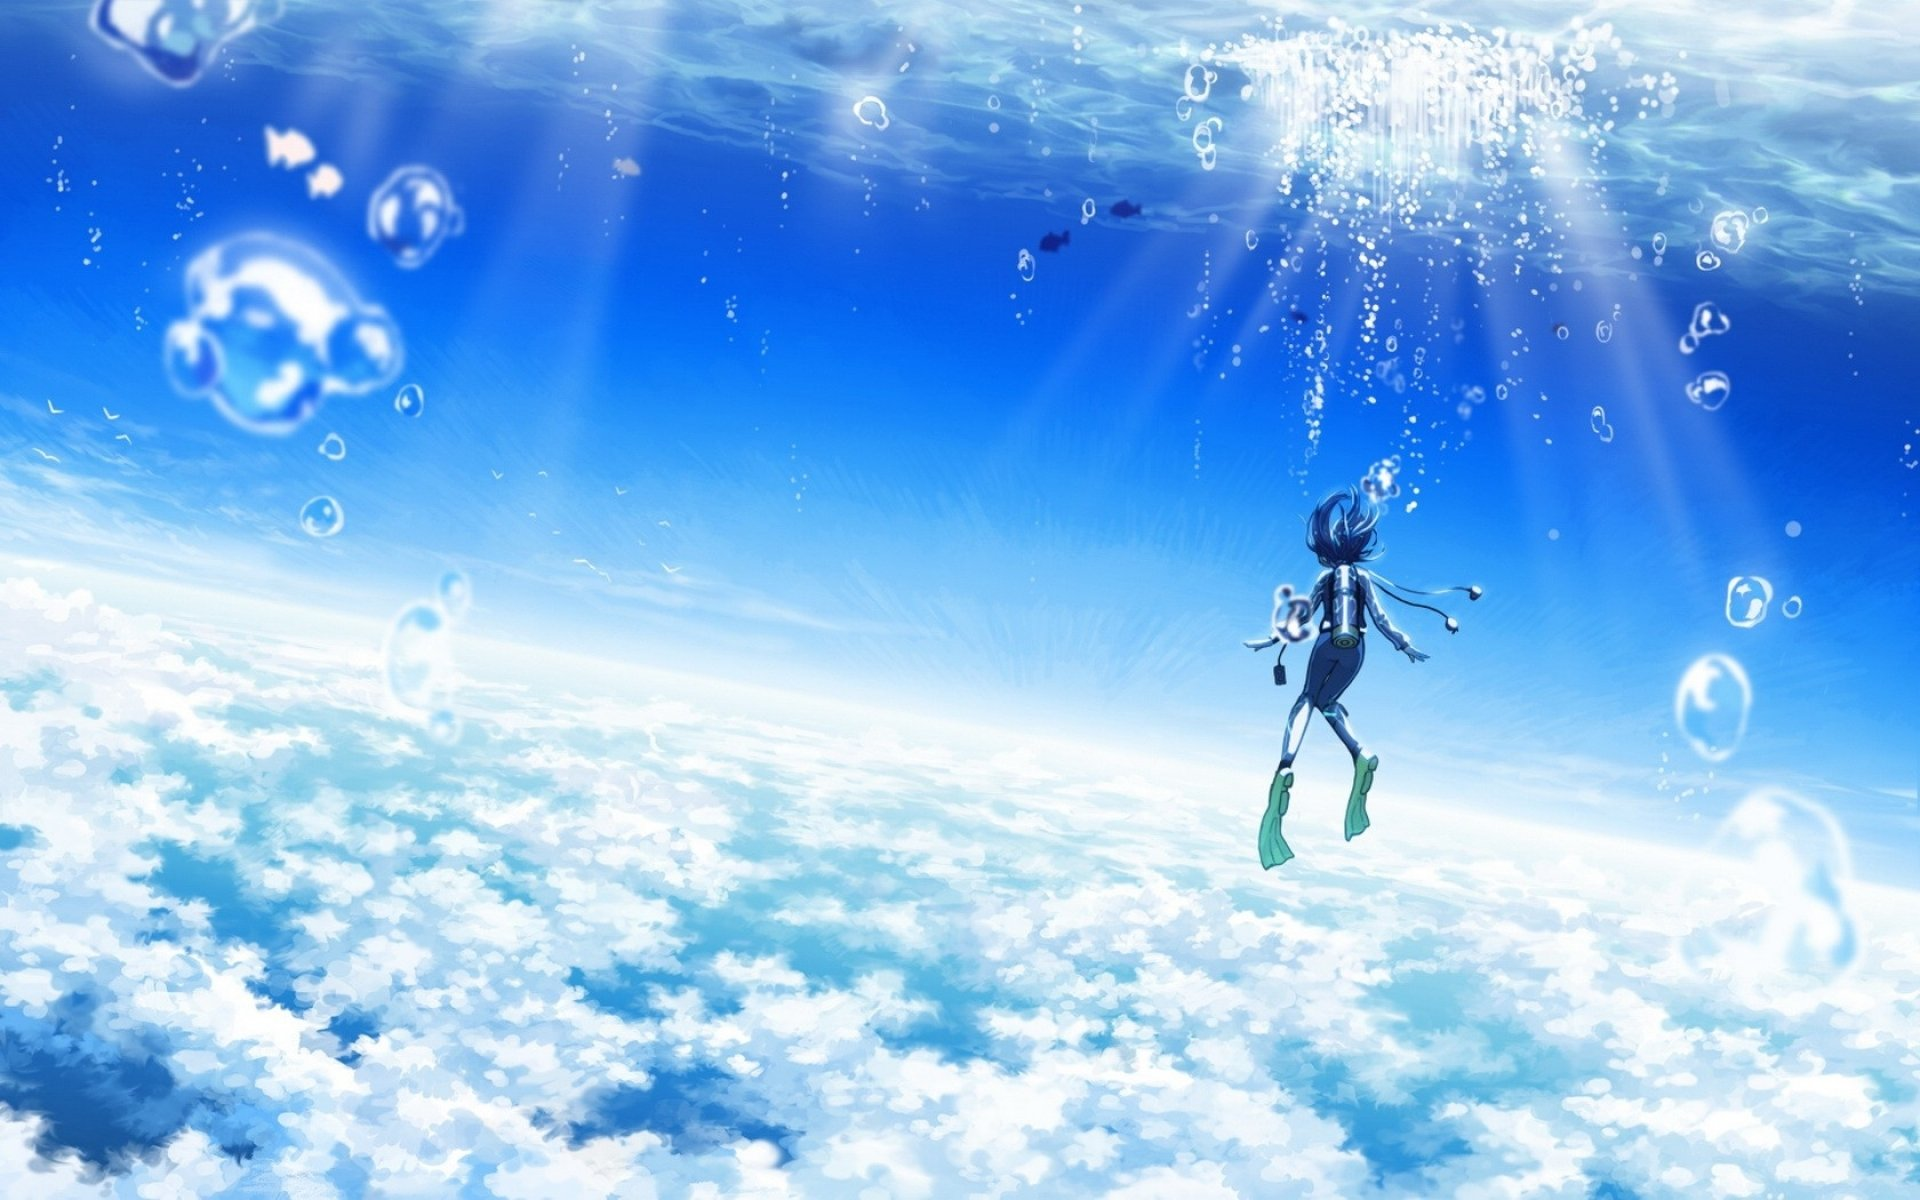 Free Download Maouki Images 45905 Anime Scenery Blue Sky Anime